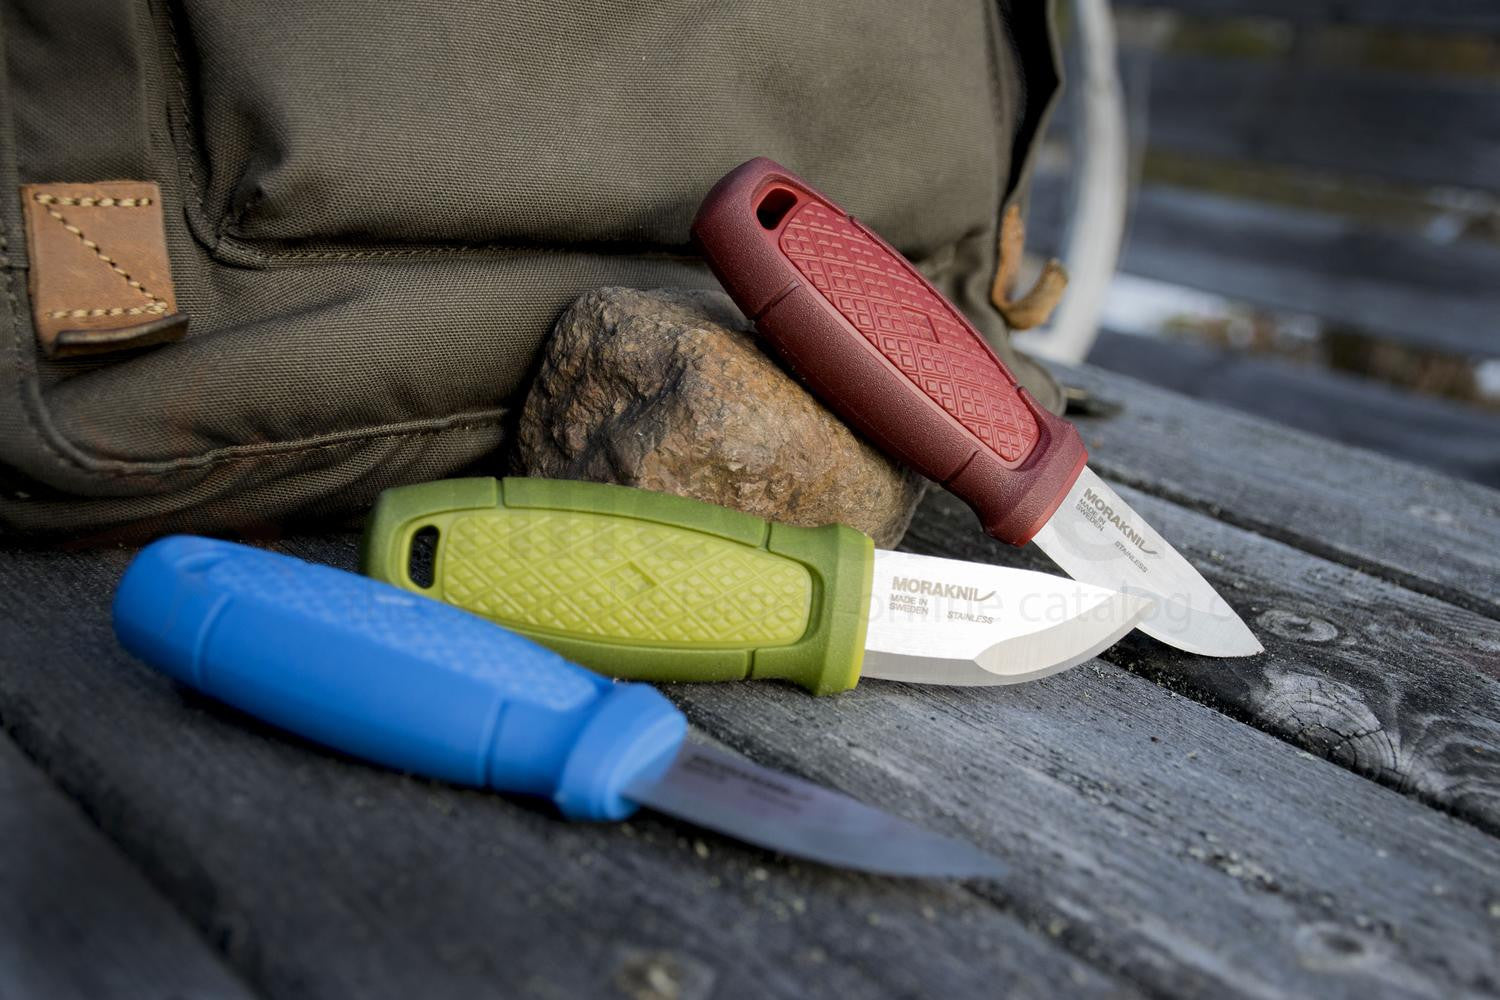 Morakniv Morakniv Eldris Blue Outdoor Knife with Clam Sheath - BNR Industrial